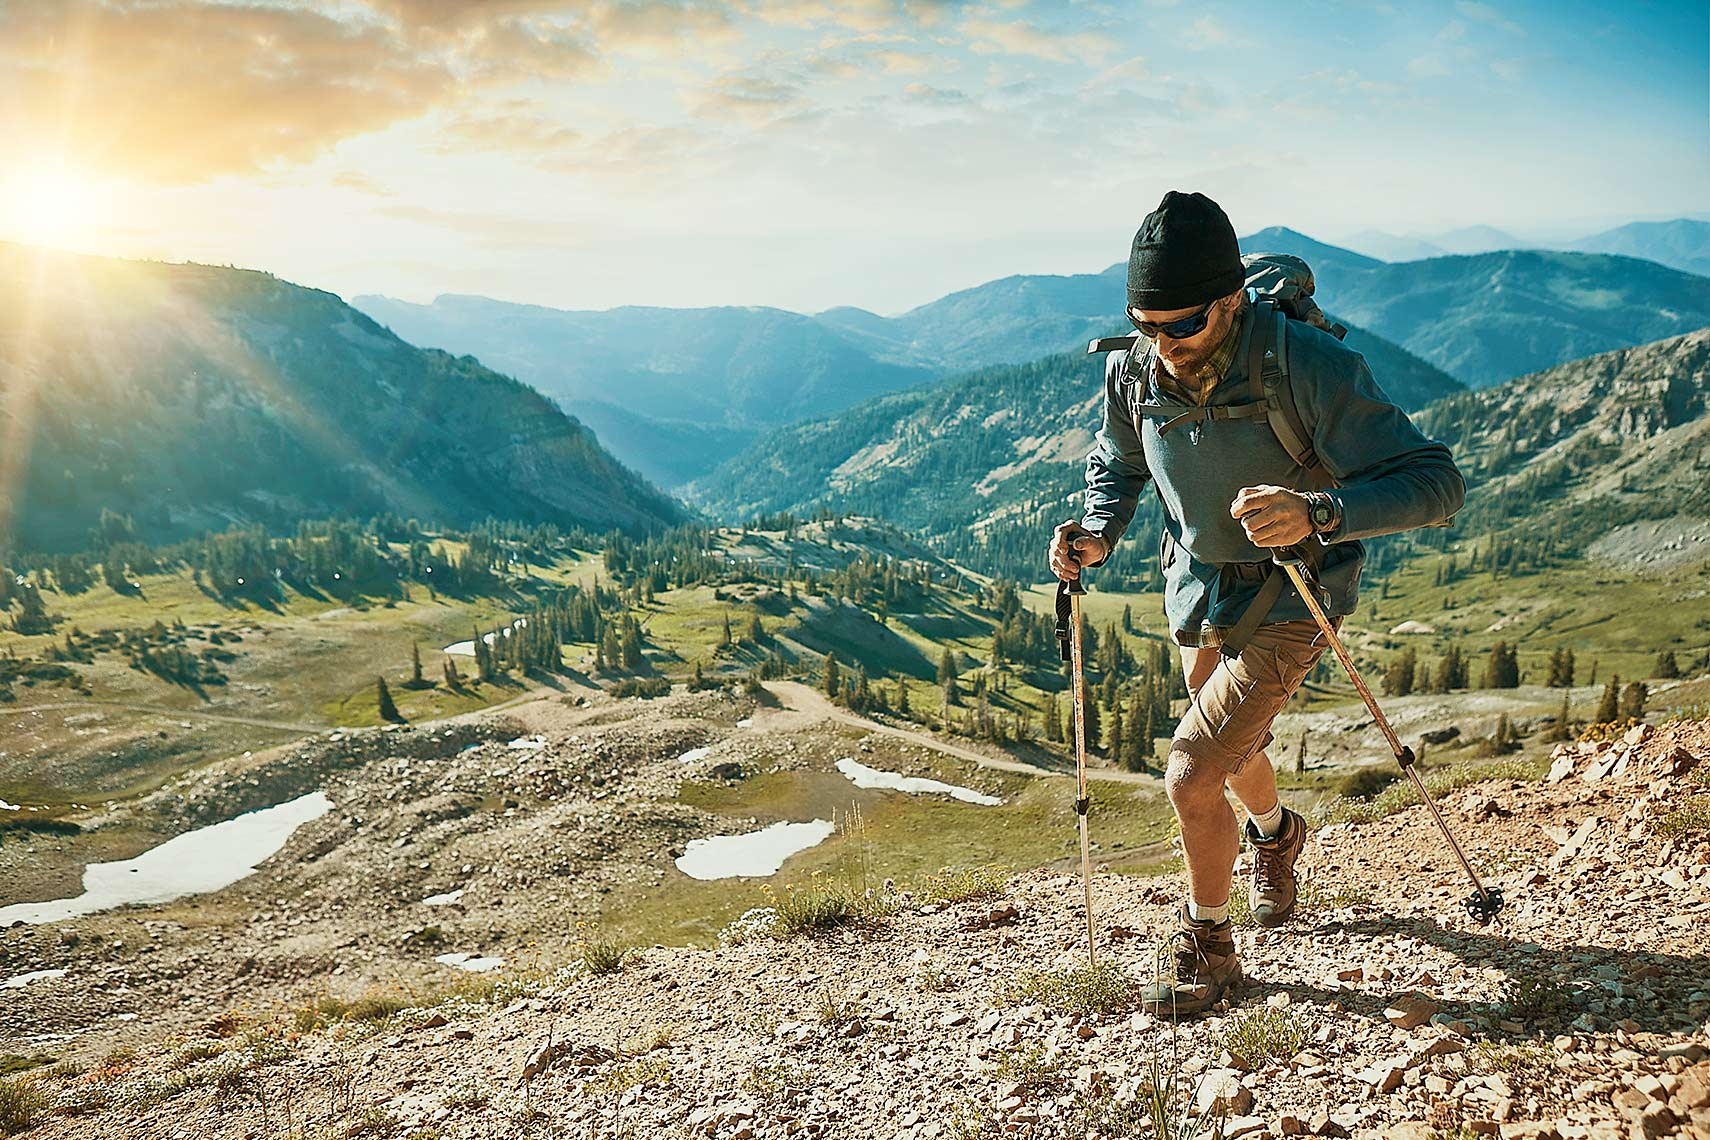 Final image from the hiking boot campaign.